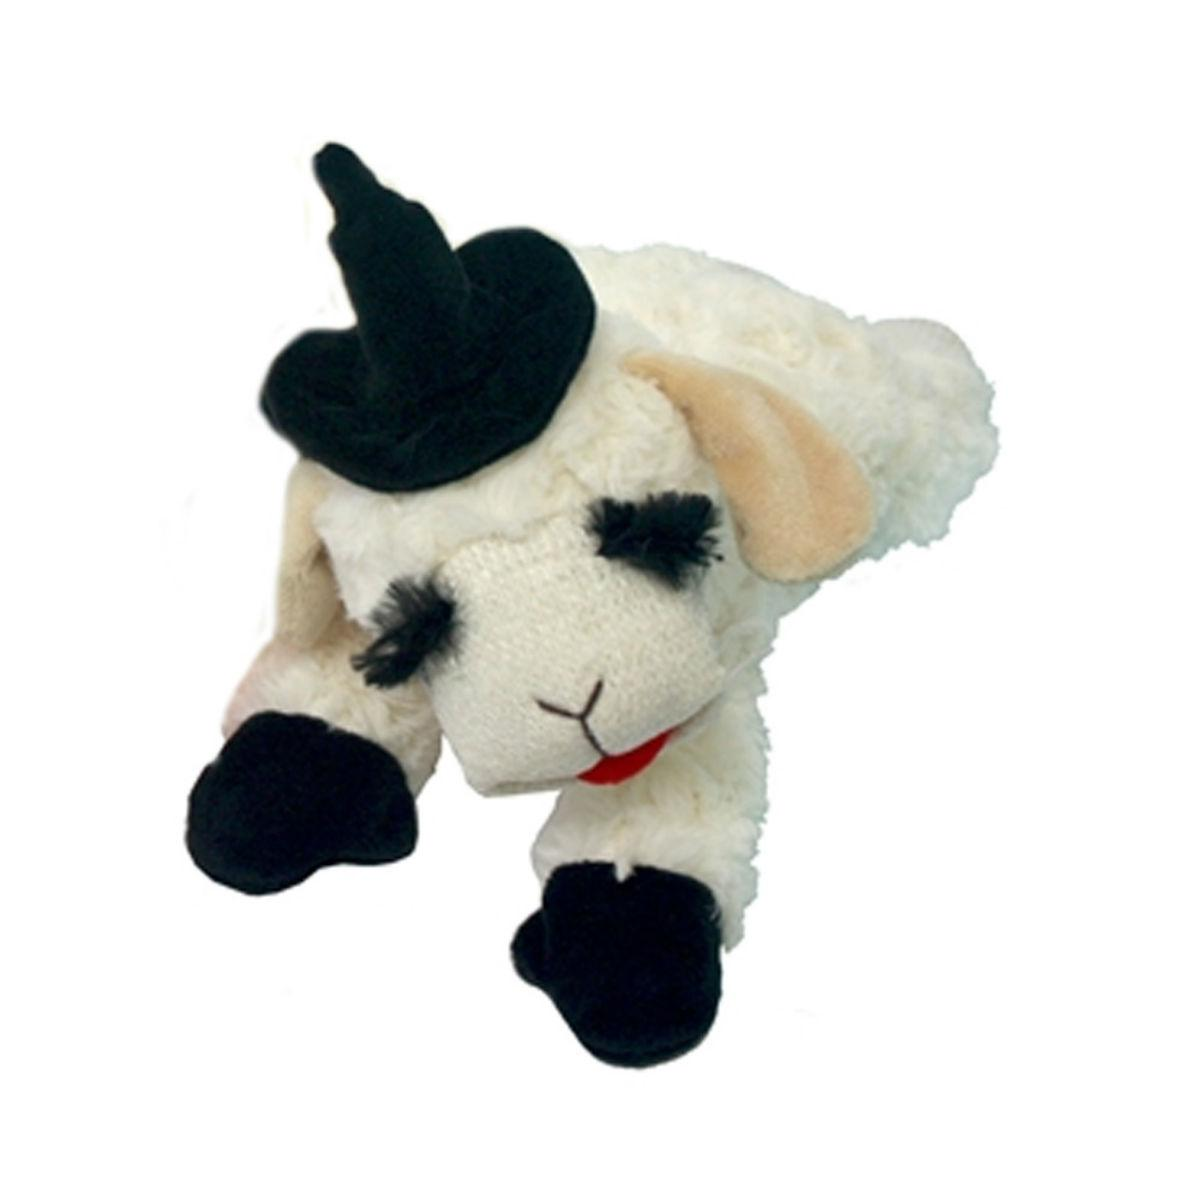 Multipets Halloween Lamb Chop Dog Toy - Black Witches Hat